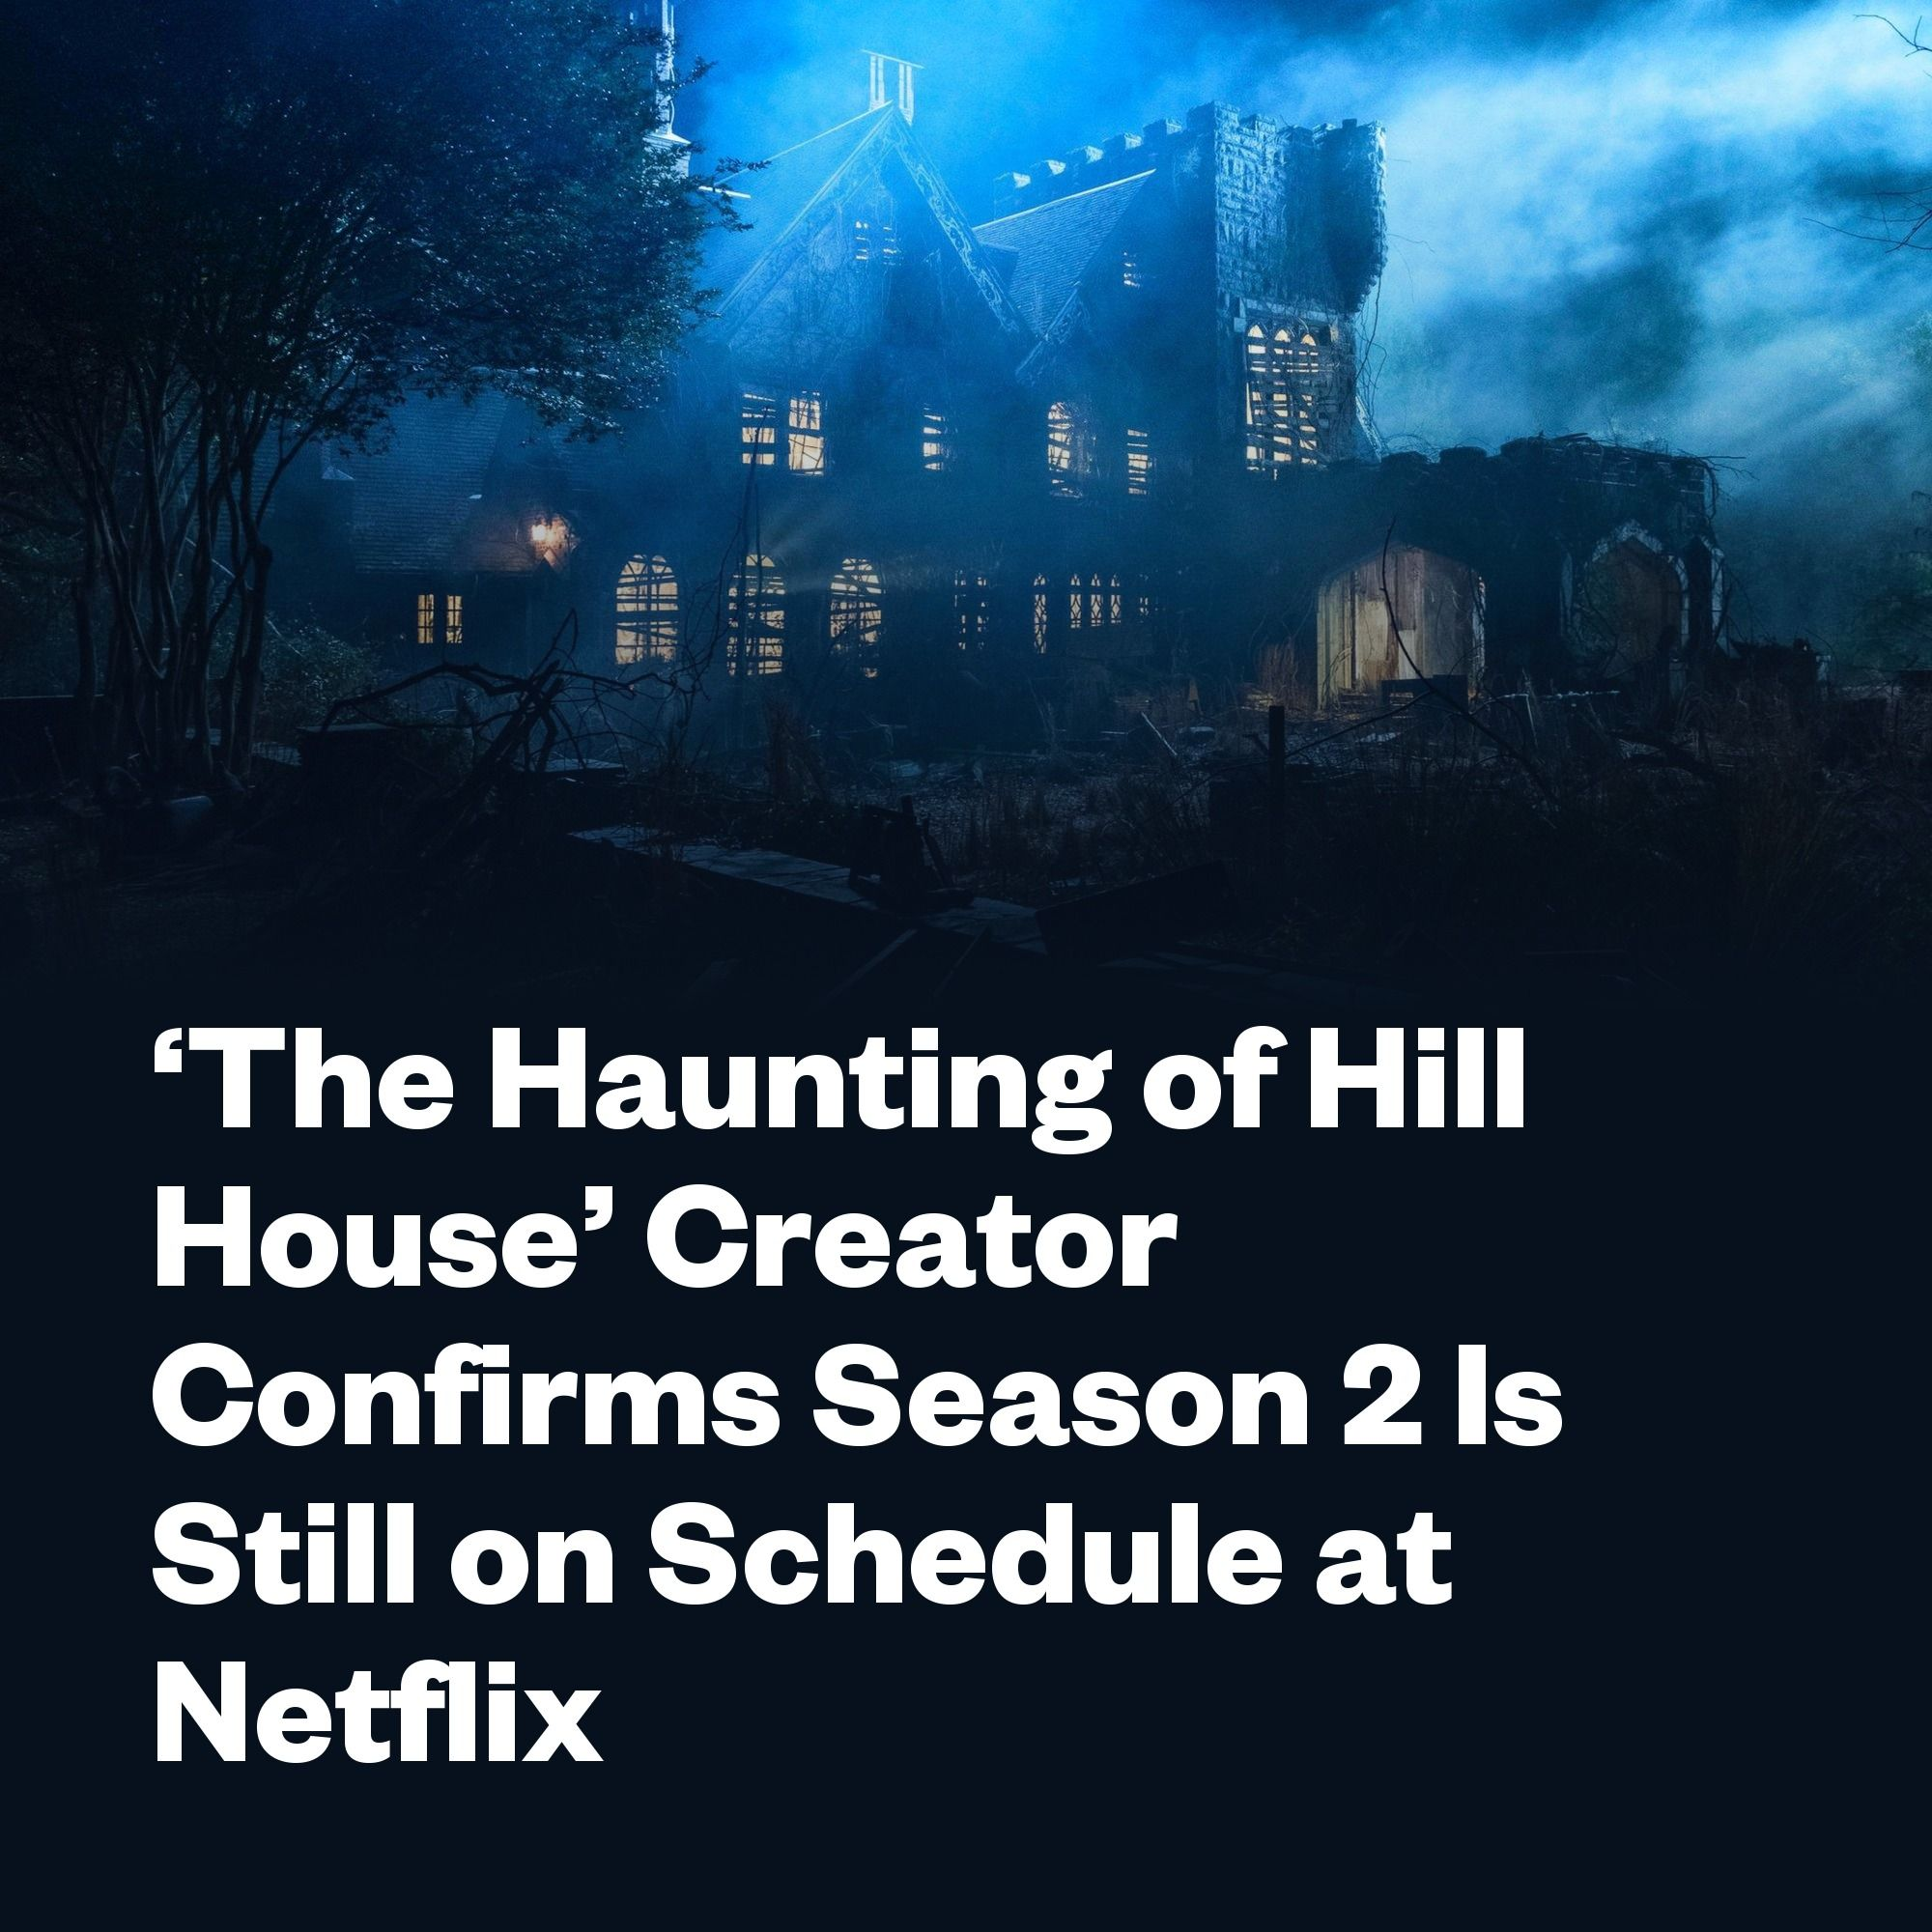 The Haunting Of Hill House Creator Confirms Season 2 Is Still On Schedule At Netflix In 2020 Best Ghost Stories Haunting House Seasons